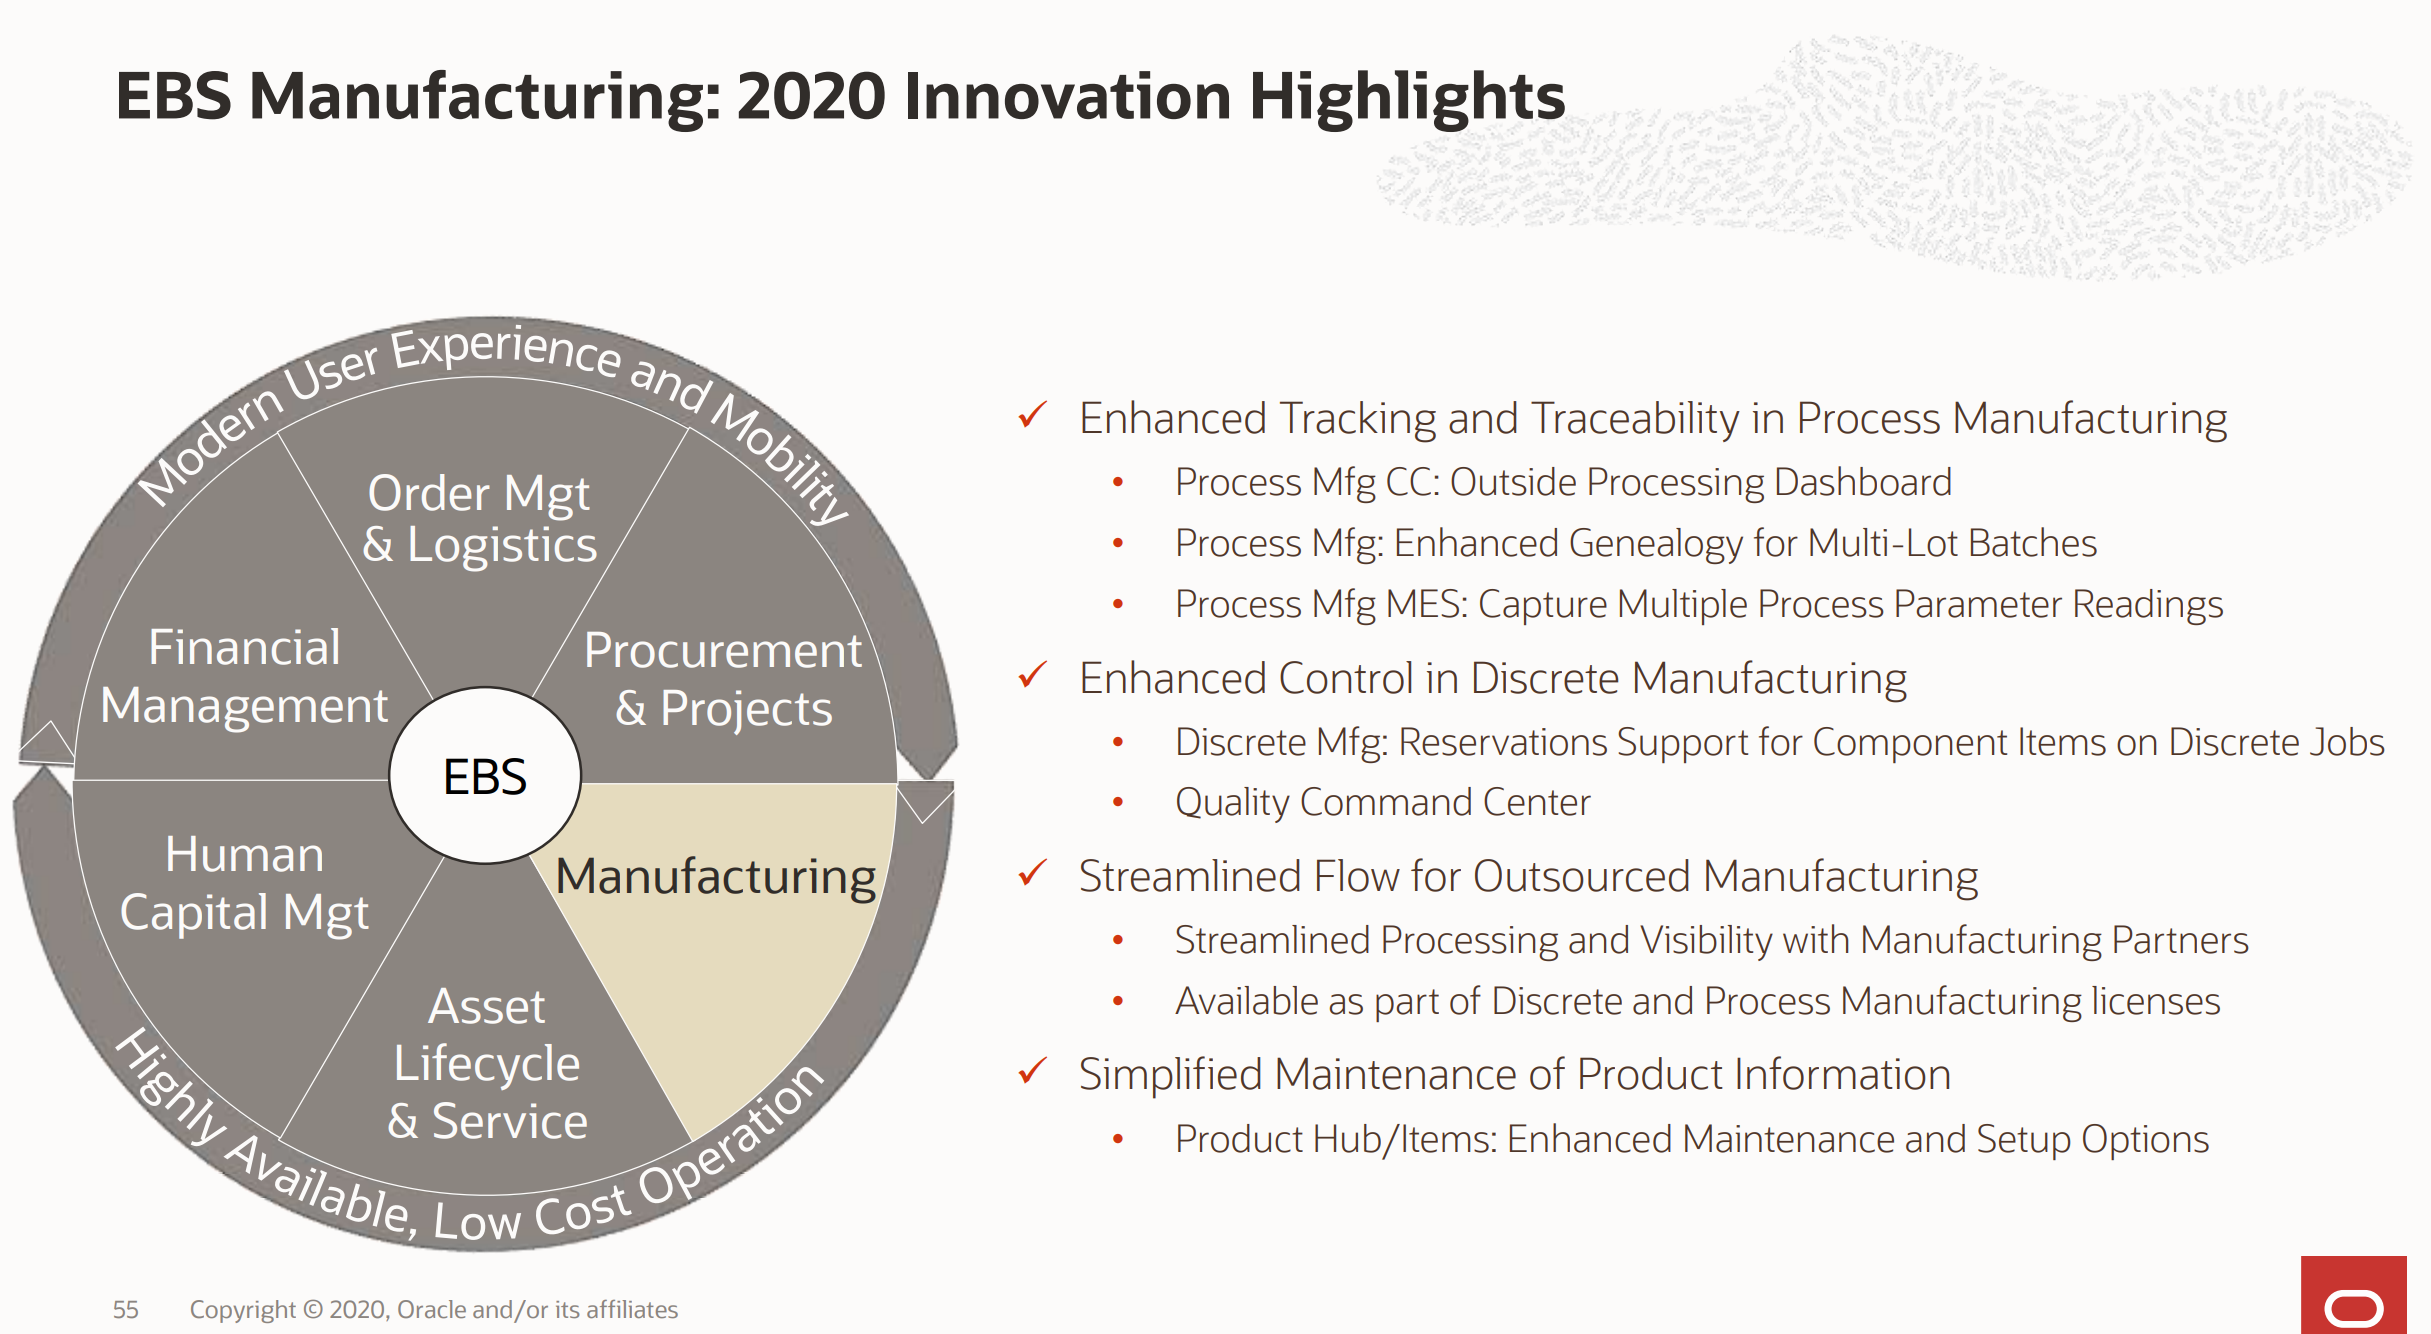 EBS Manufacturing 2020 Innovation Highlights